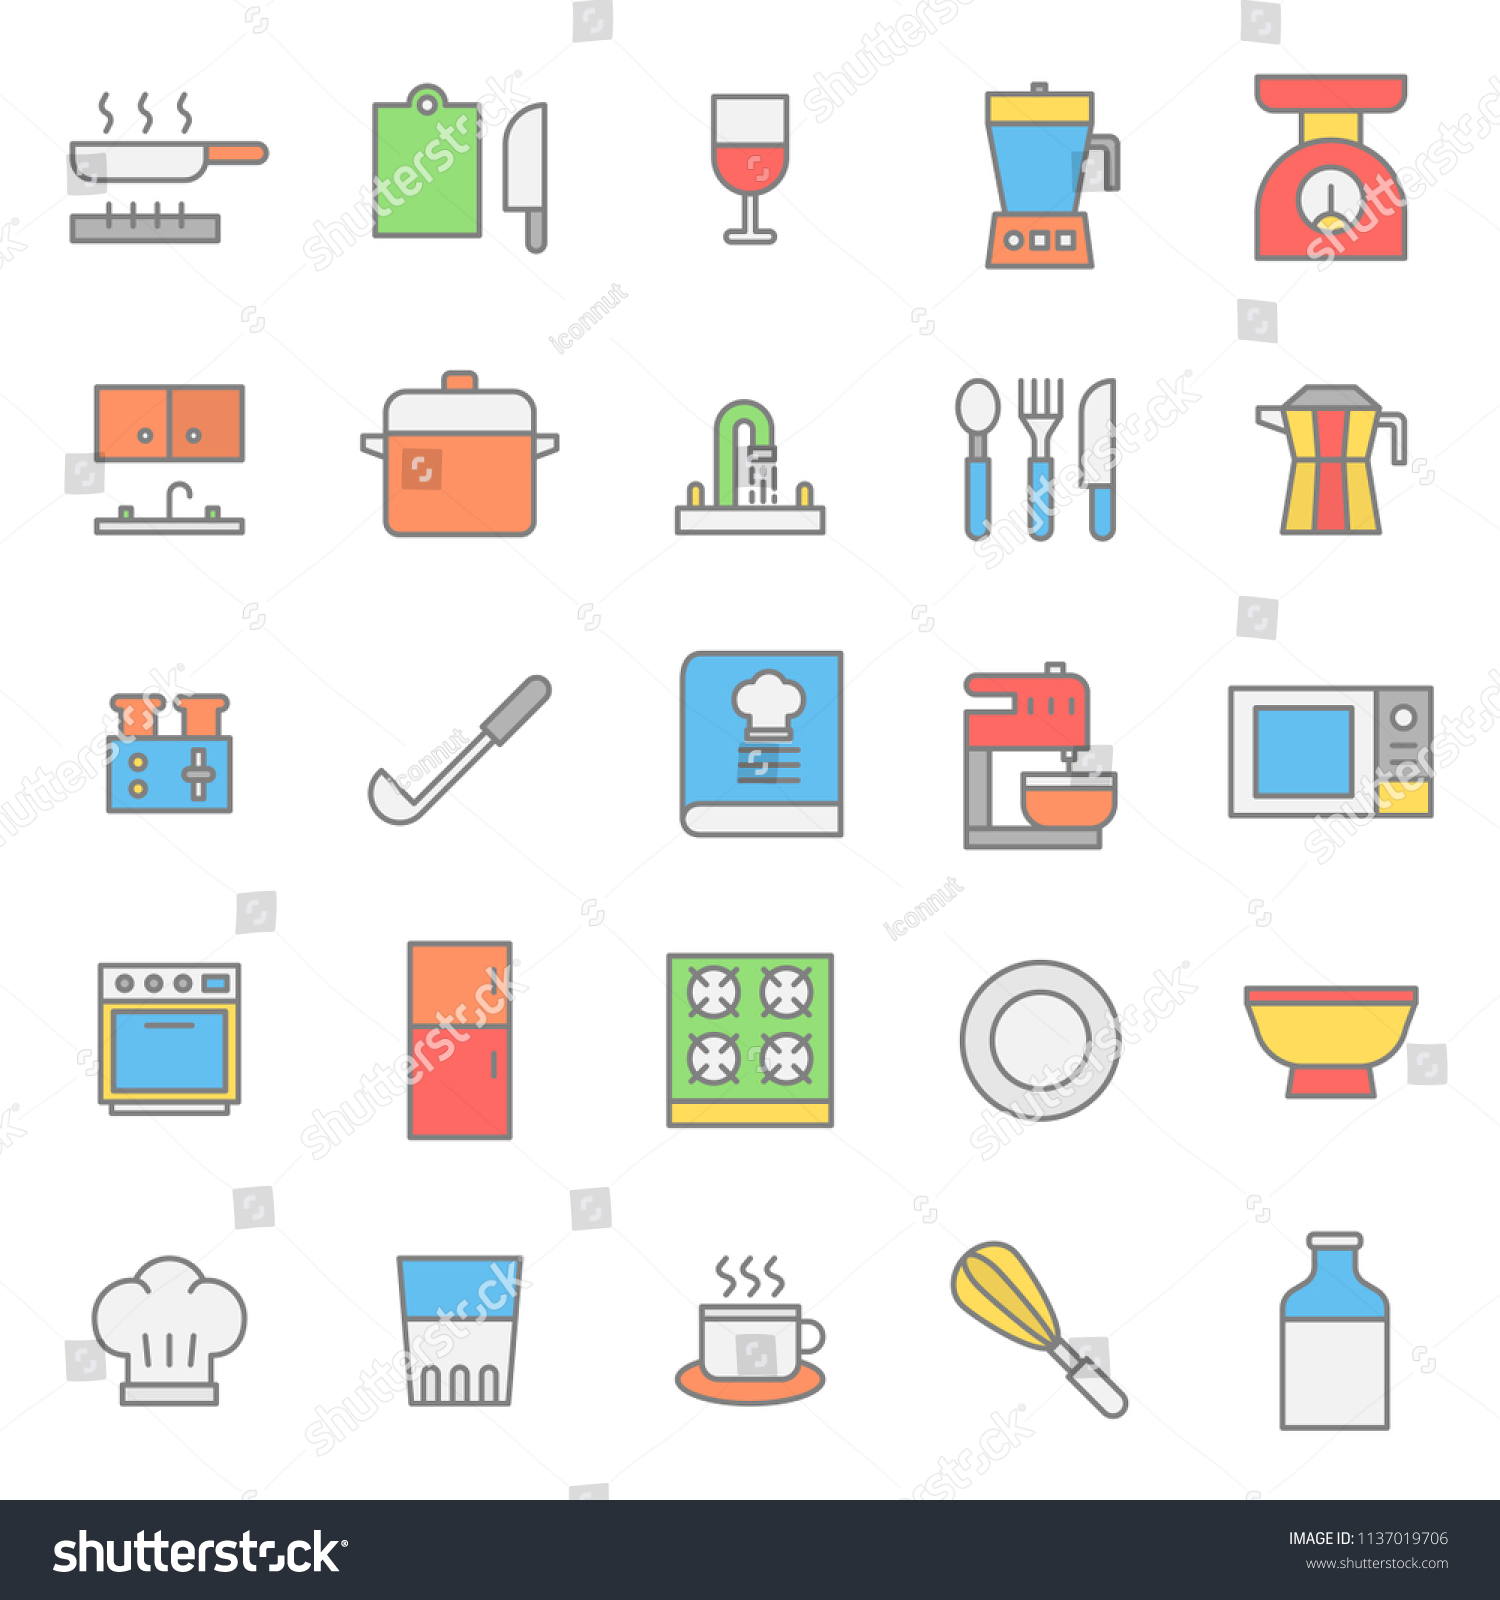 Kitchen set flat color icon collection with simple and modern outline editable stroke